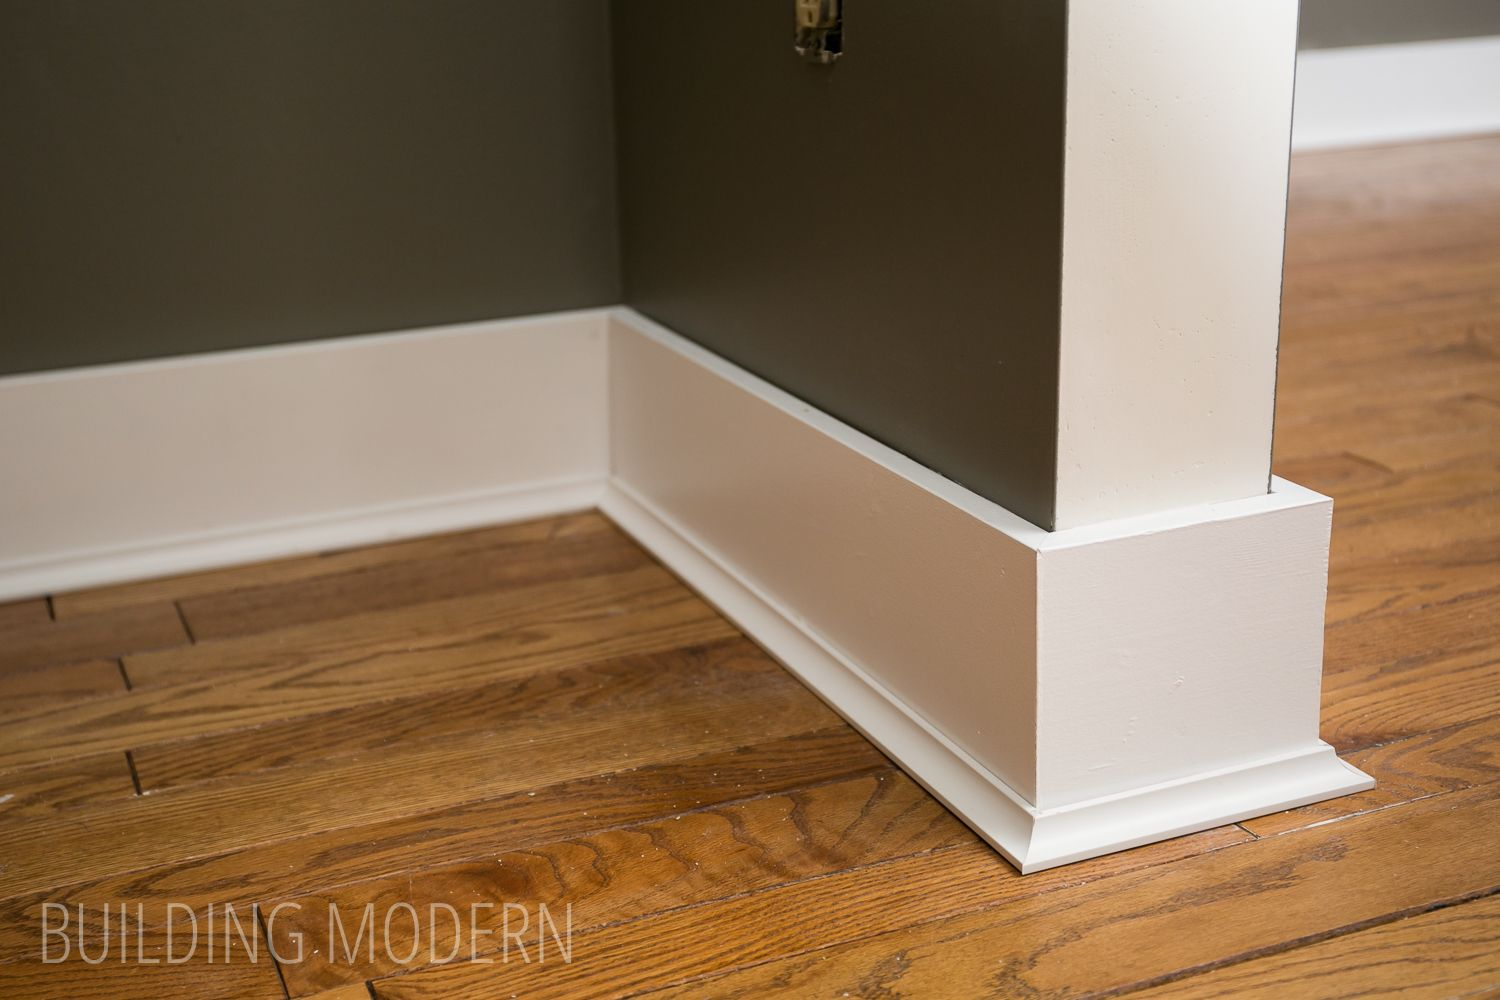 installing baseboards, cove moulding, & caulking | n'ville kitchen